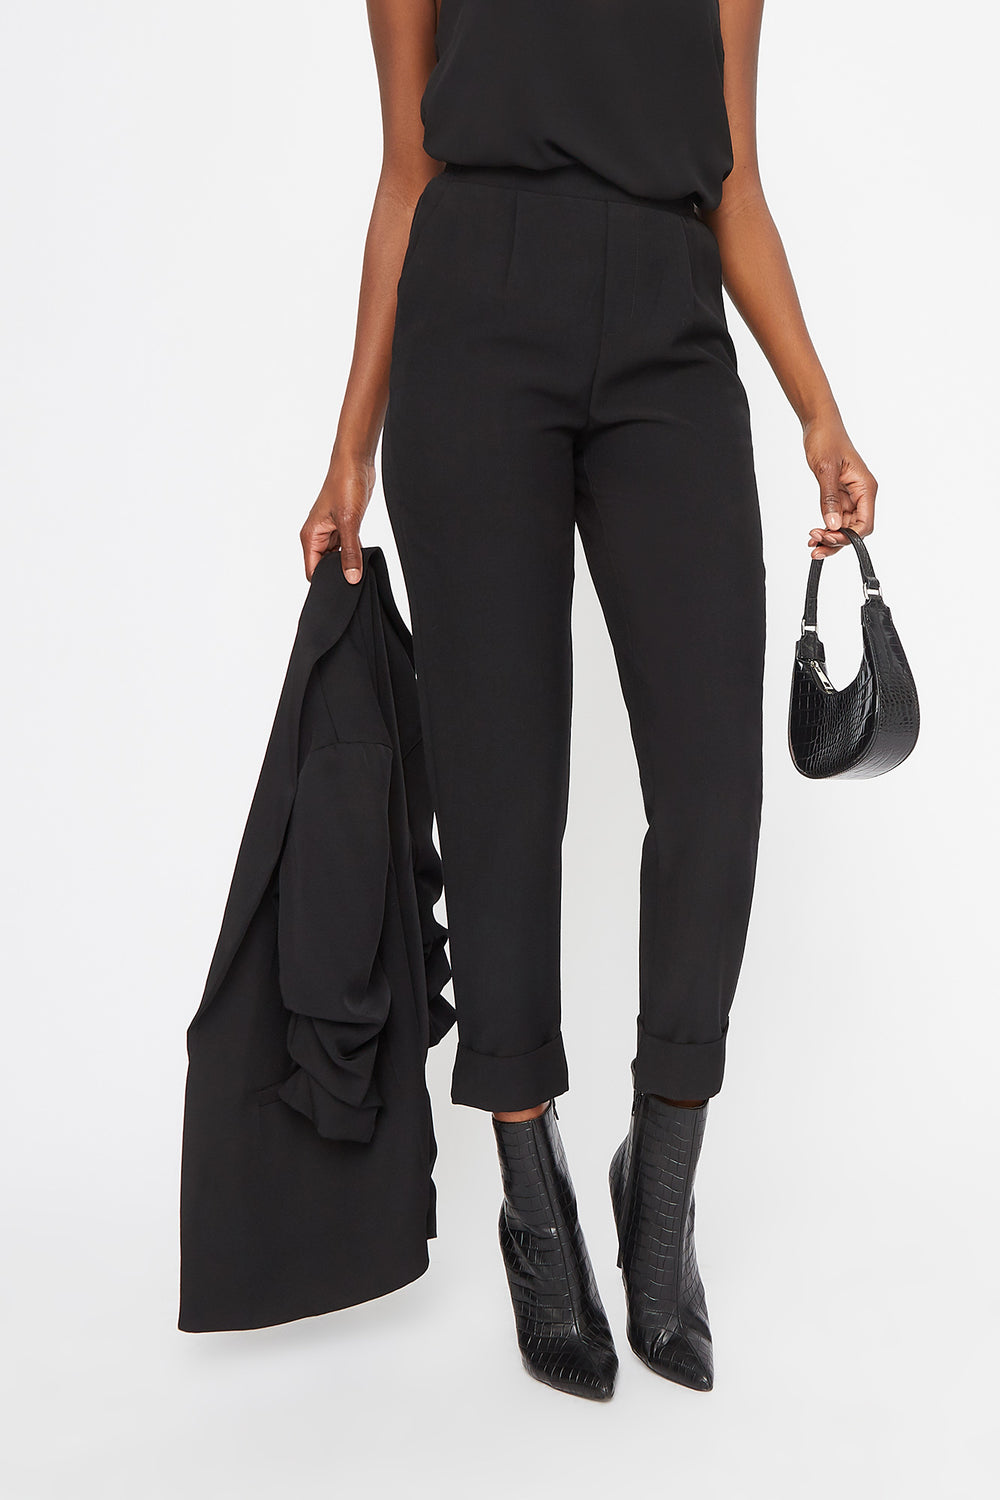 Cuffed Cropped Pant Black